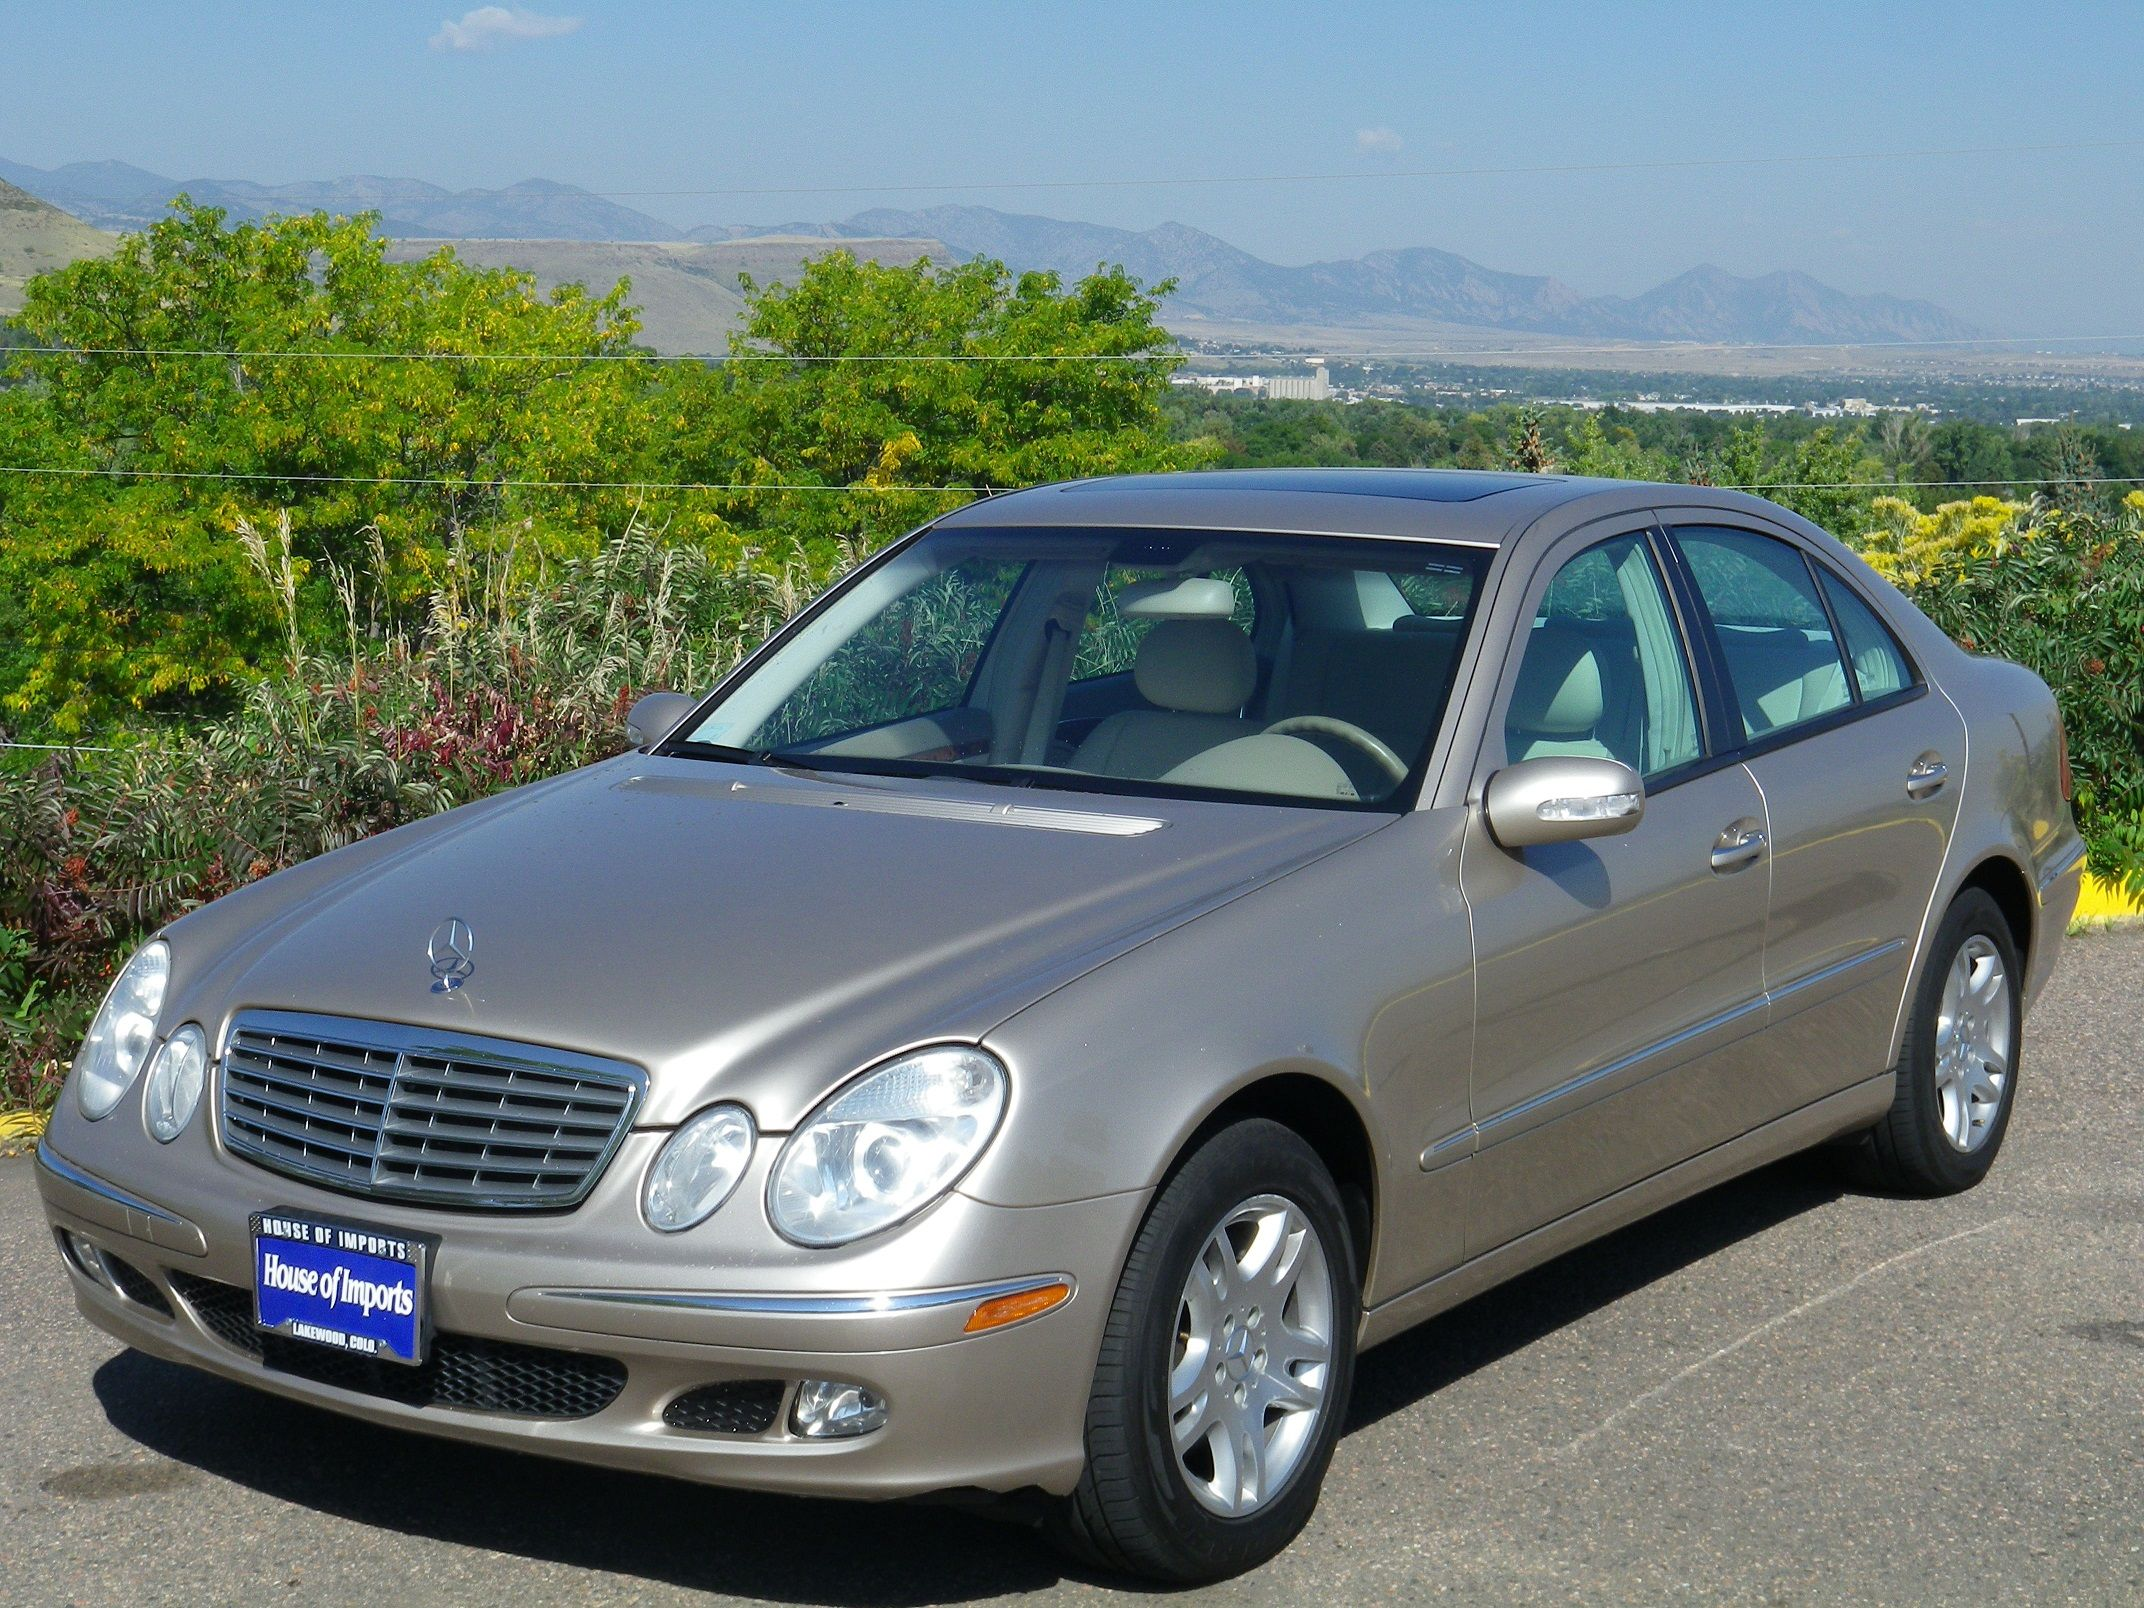 medium resolution of 2004 mercedes benz e320 4 matic 103 035 miles v i n wdbuf82j44x153514 stock c450 desert silver metallic interior stone leather